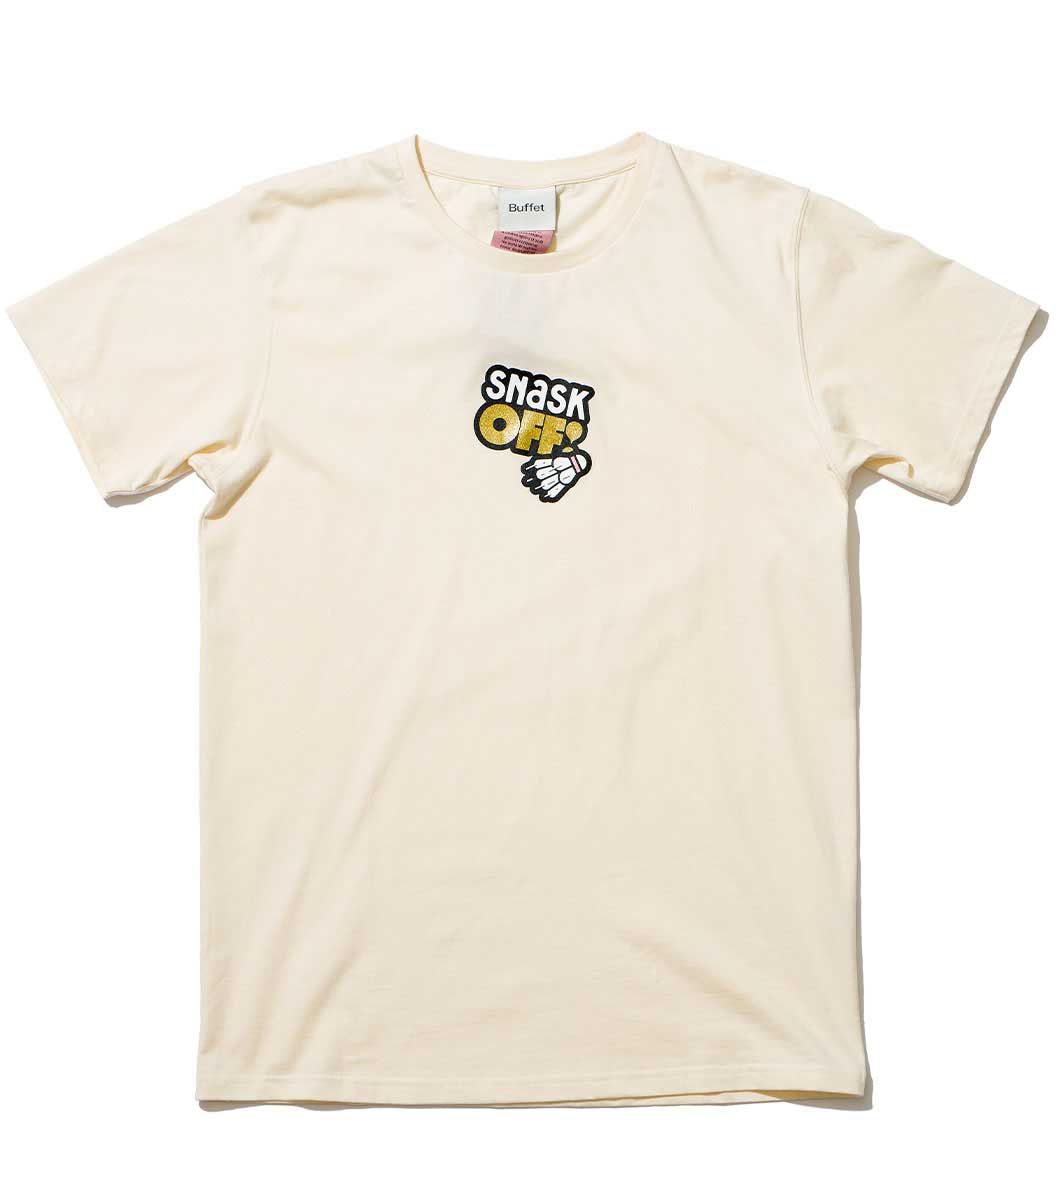 Image of SNASK Off! T-Shirt